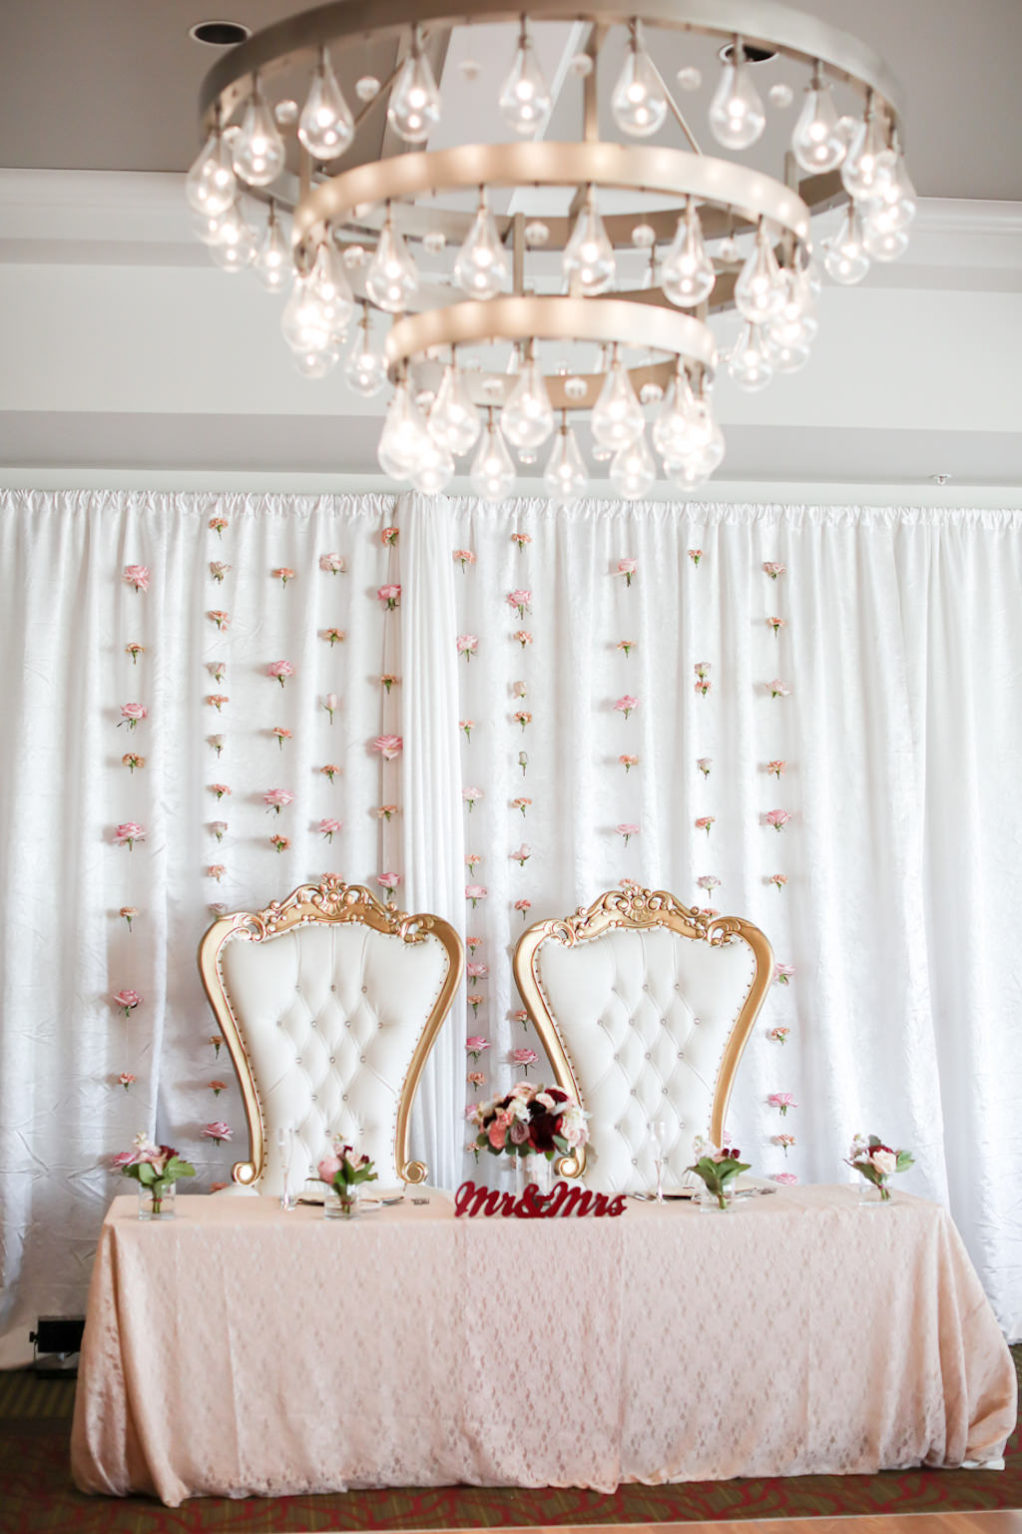 Romantic Antique Gold and Ivory Cushion Chairs, Sweetheart Table with Dusty Rose Table Linen, Red Mr and Mrs Sign, White Draping with Blush Pink Hanging Flowers | Wedding Photographer Lifelong Photography Studios | Tampa Bay Wedding Planner Blue Skies Weddings and Events | St. Petersburg Hotel Wedding Venue The Birchwood | Over the Top Rental Linens